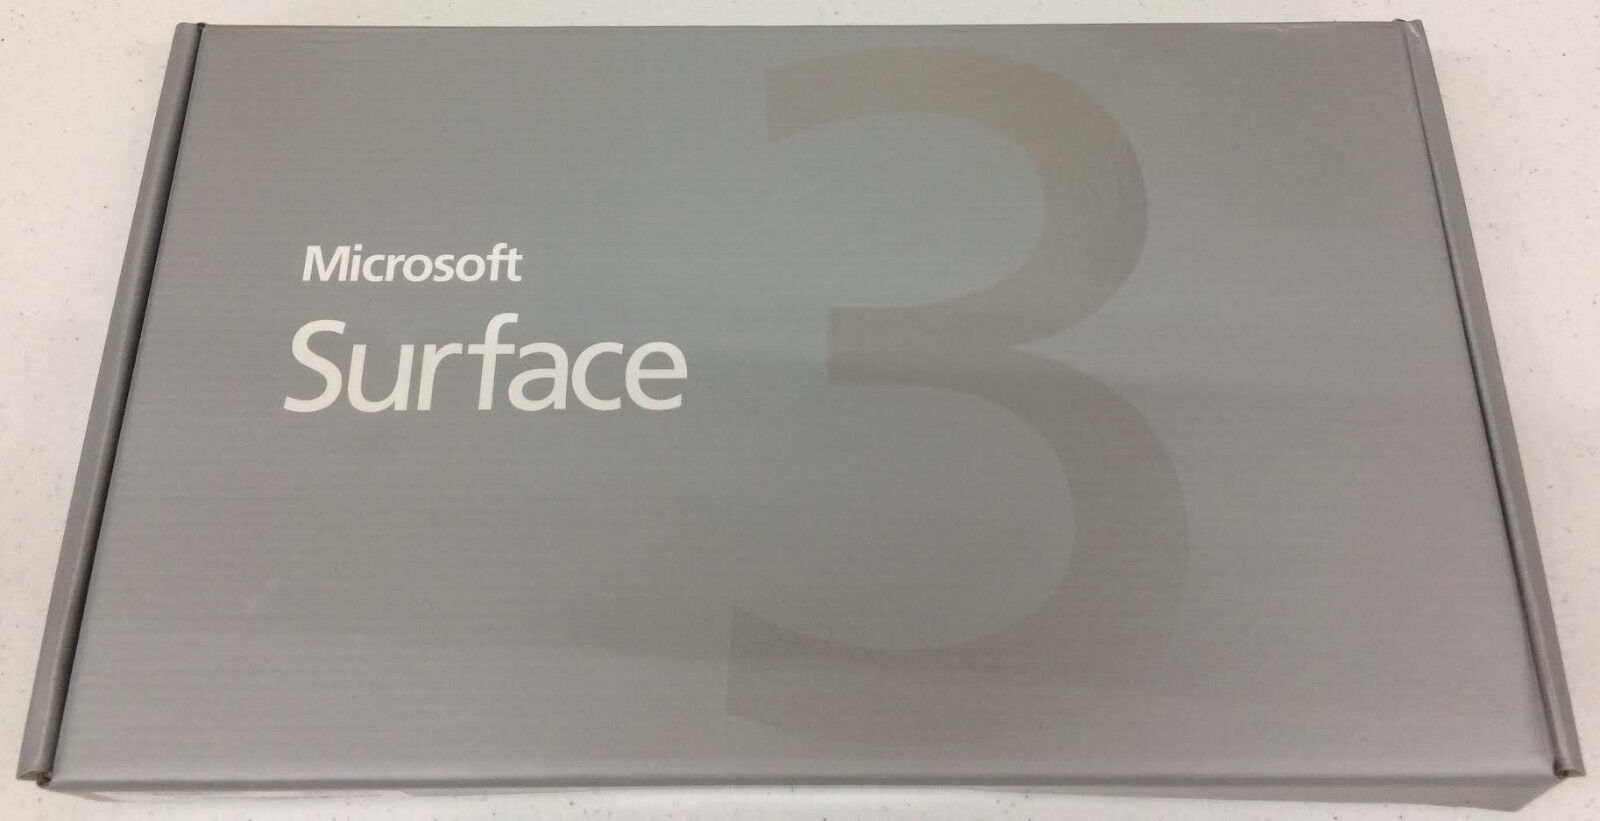 Microsoft Surface 3 64GB, Wi-Fi + 4G , 10.8in - Silver